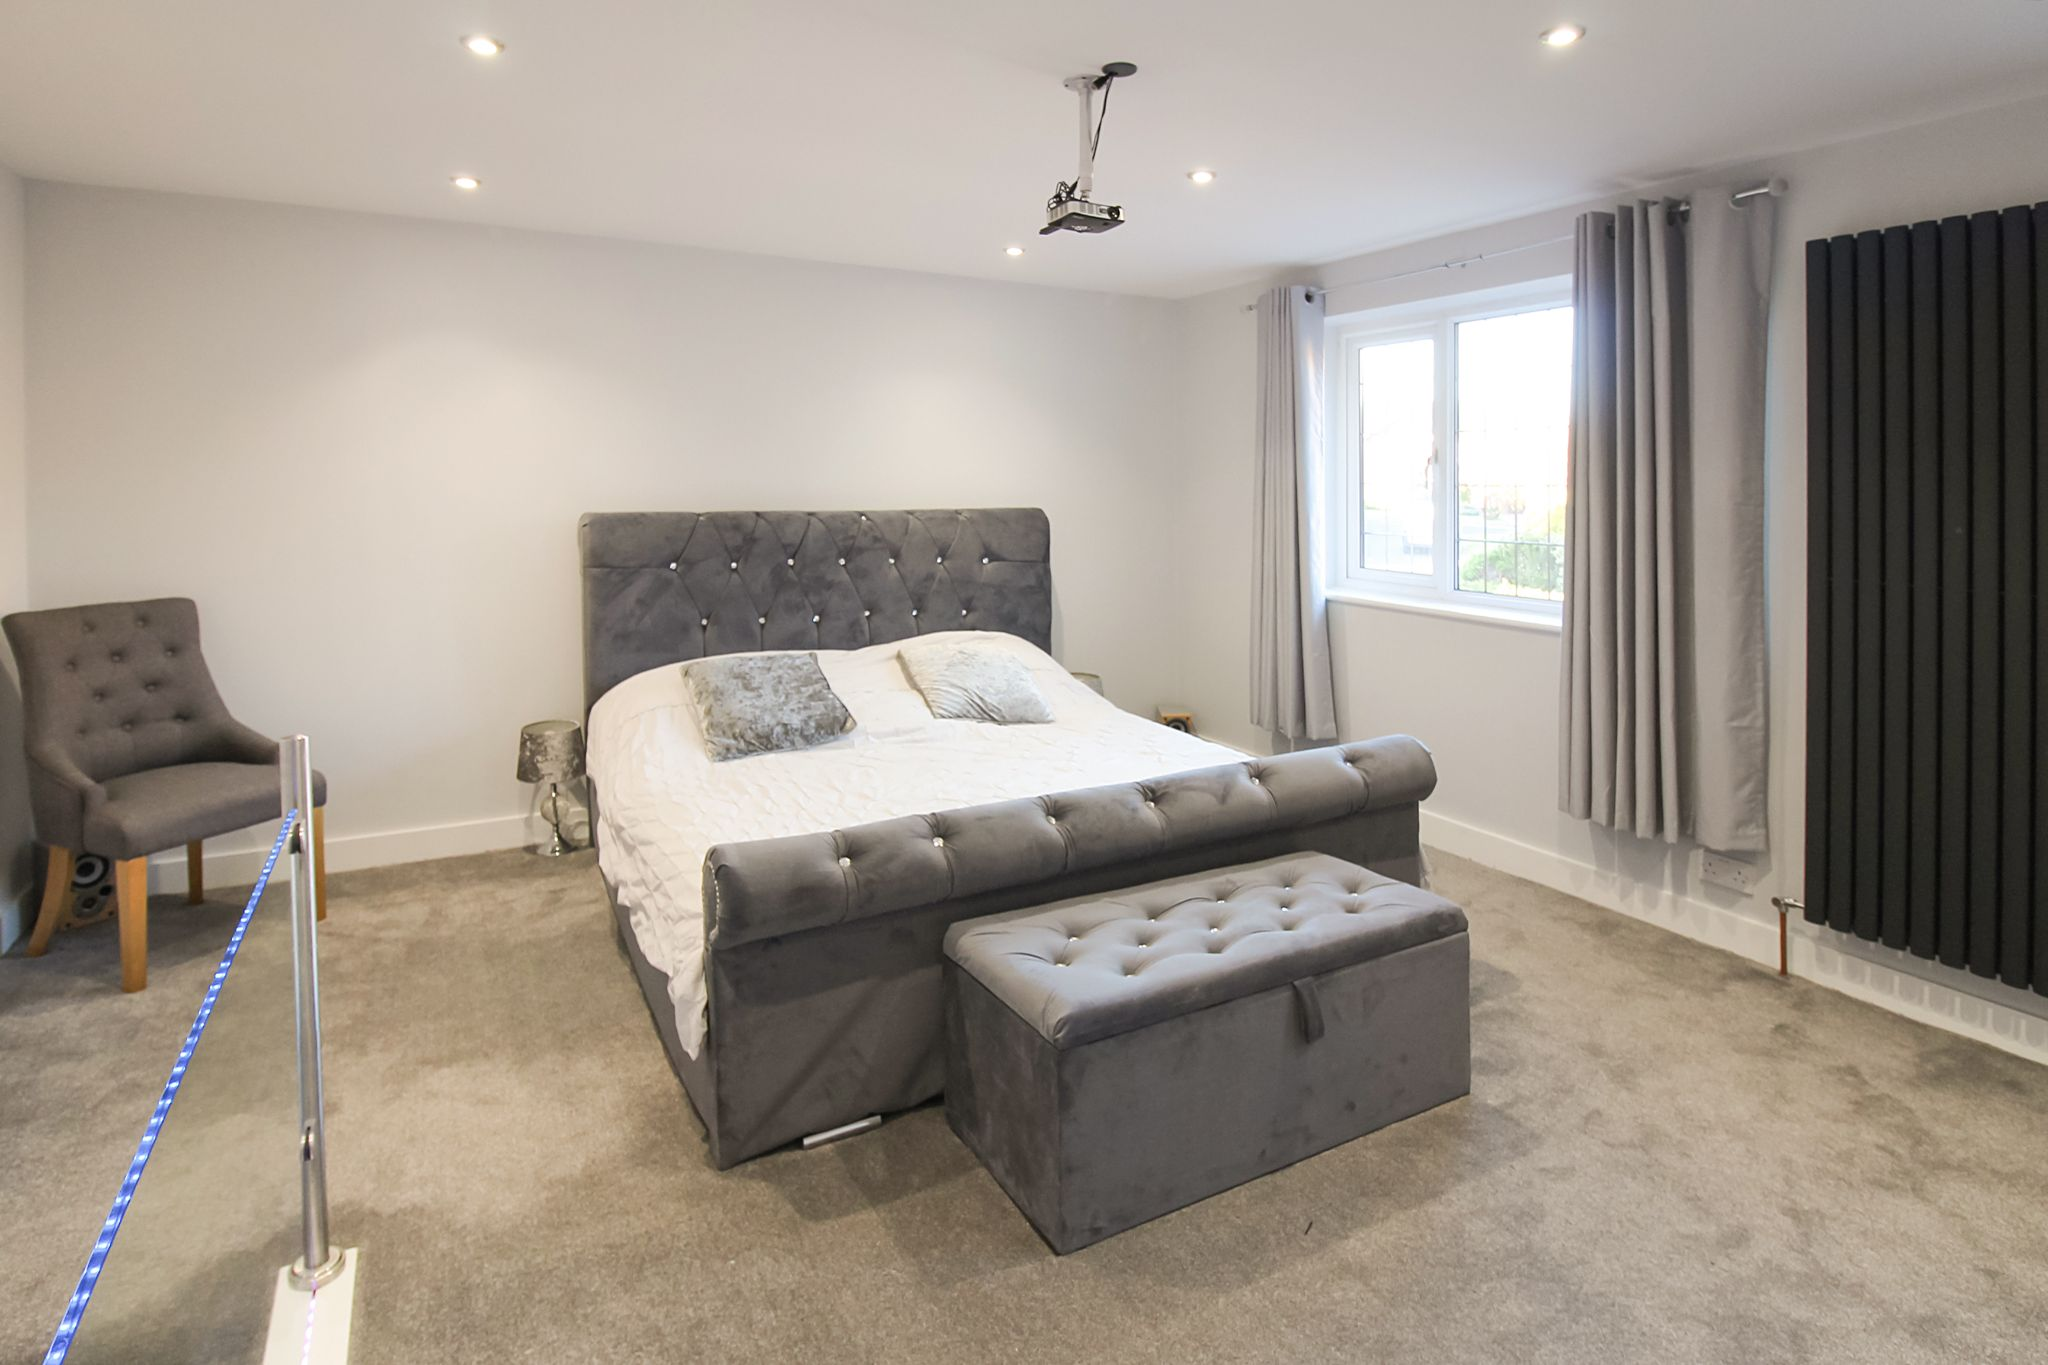 6 bedroom detached house SSTC in Solihull - Photograph 12.